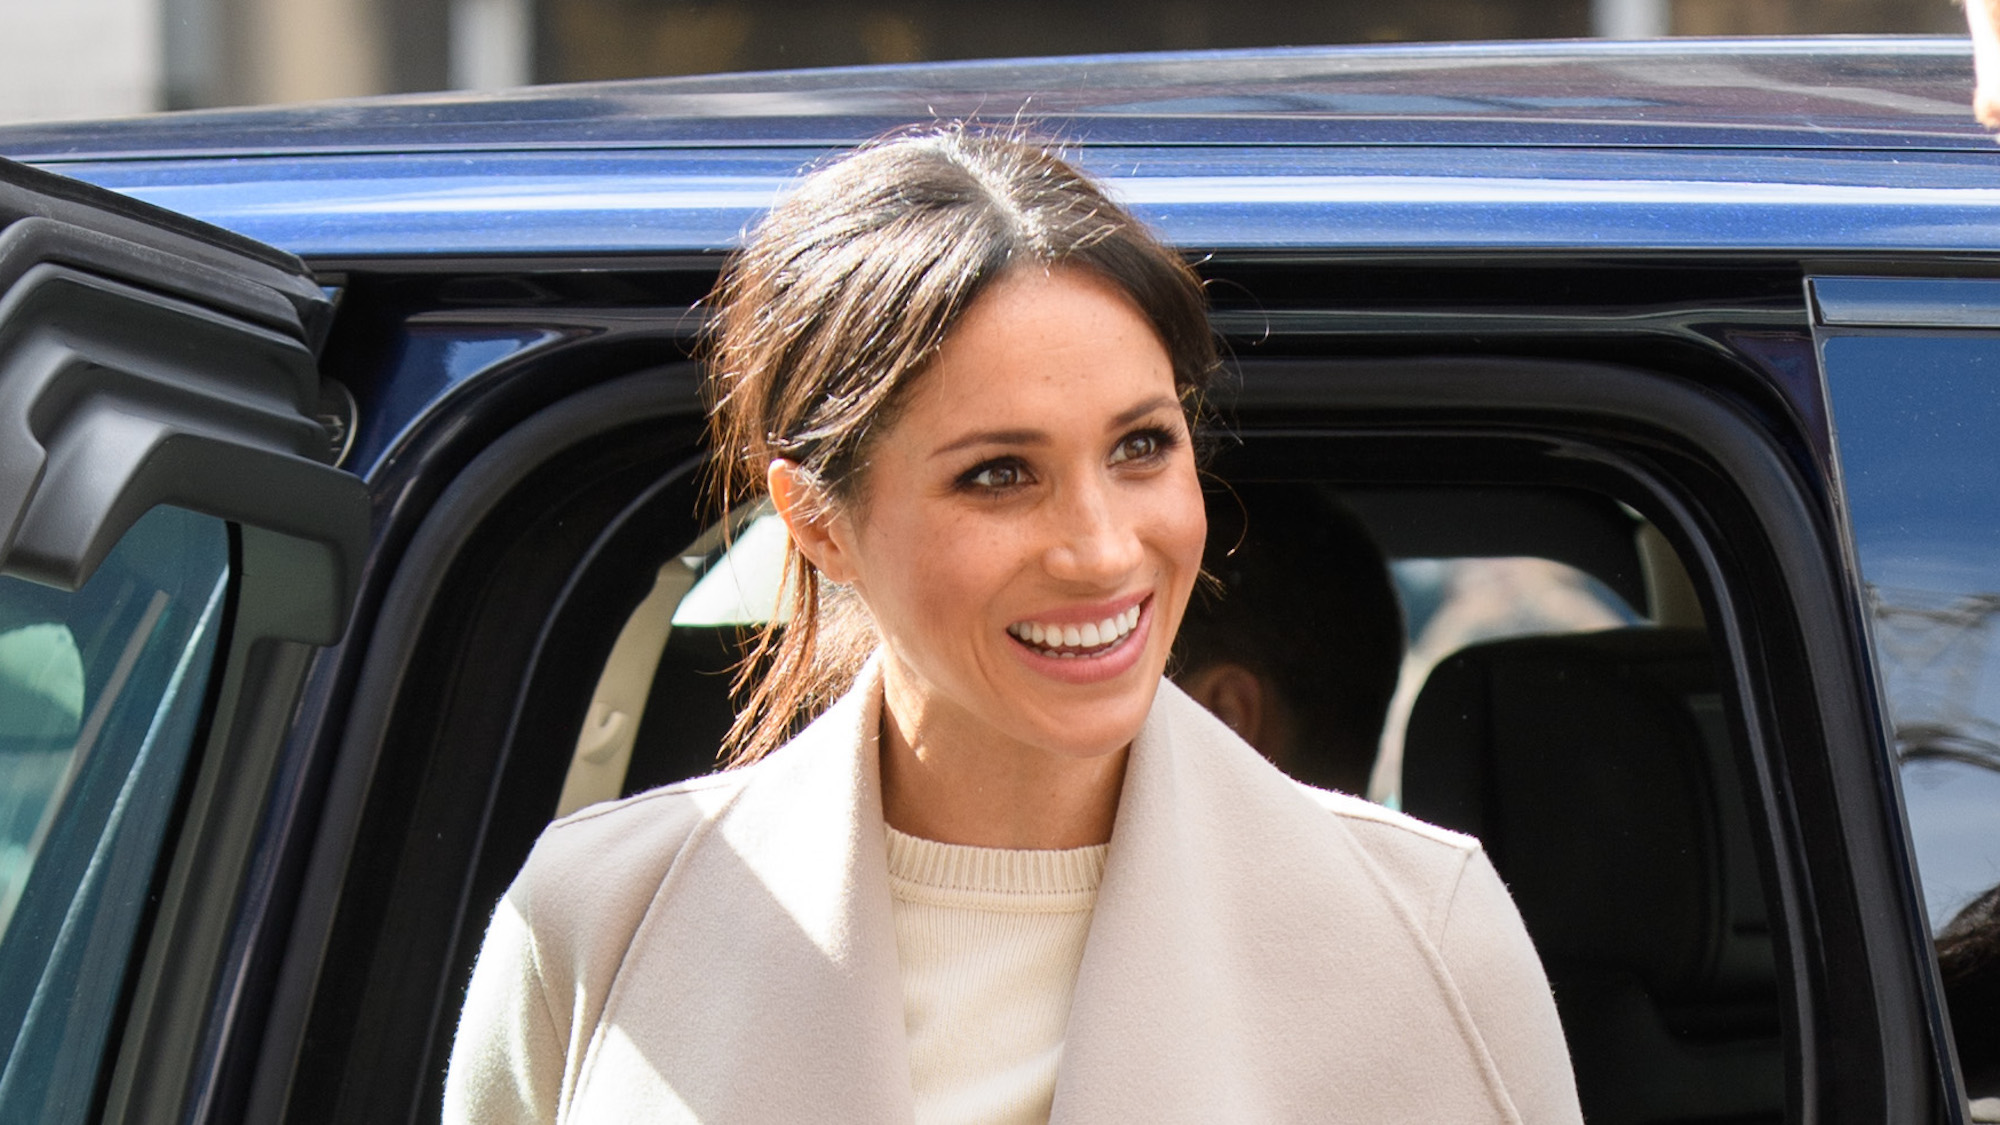 Here's why Meghan Markle chose to wear a sheer dress in her engagement photos